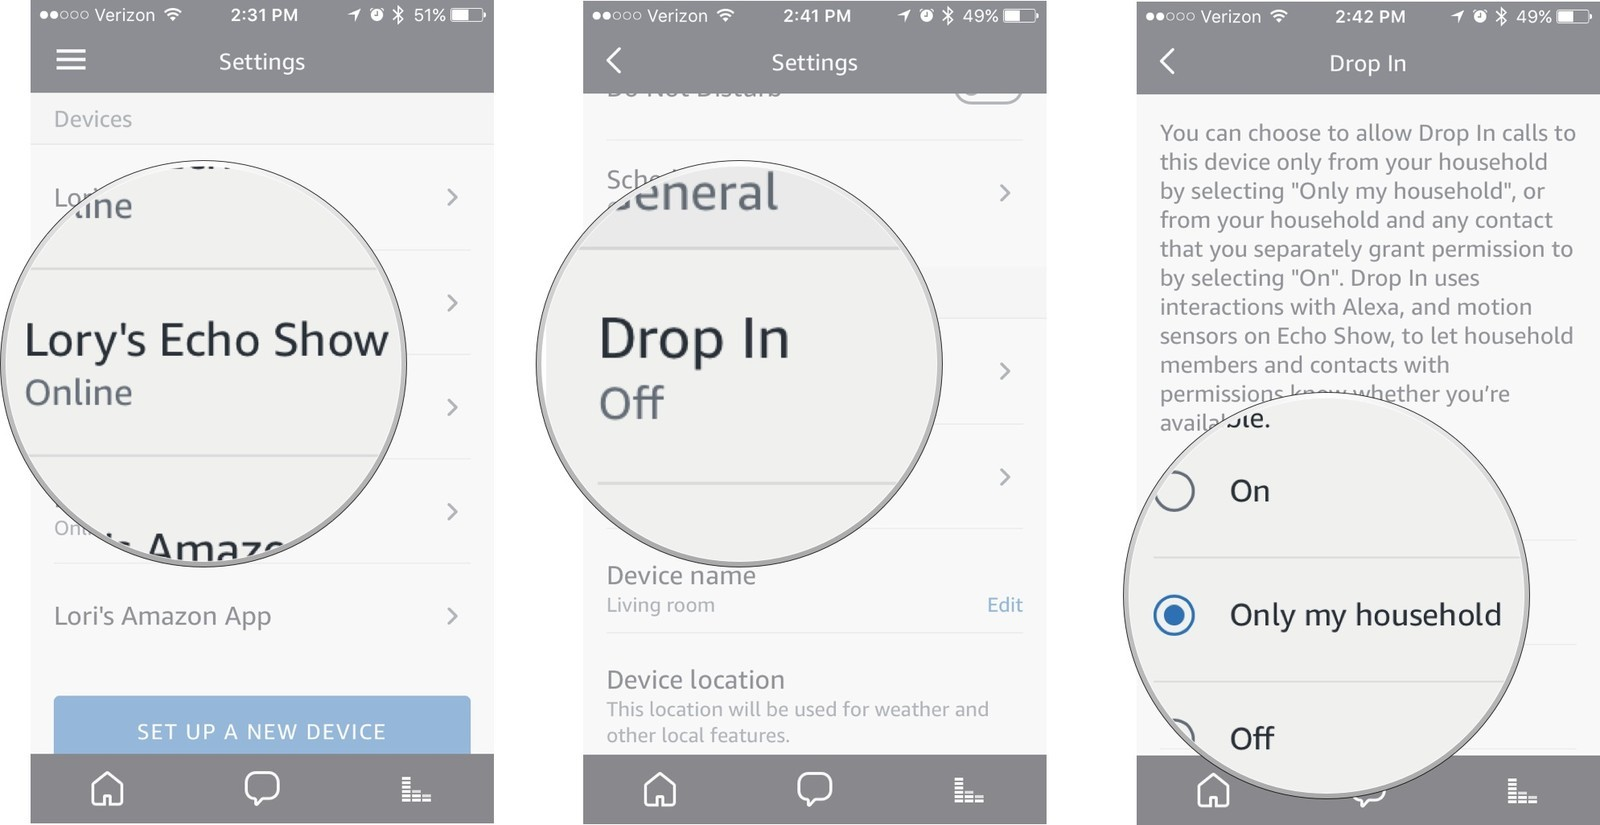 Tap your device, then tap Drop In, then choose On or Only for Household